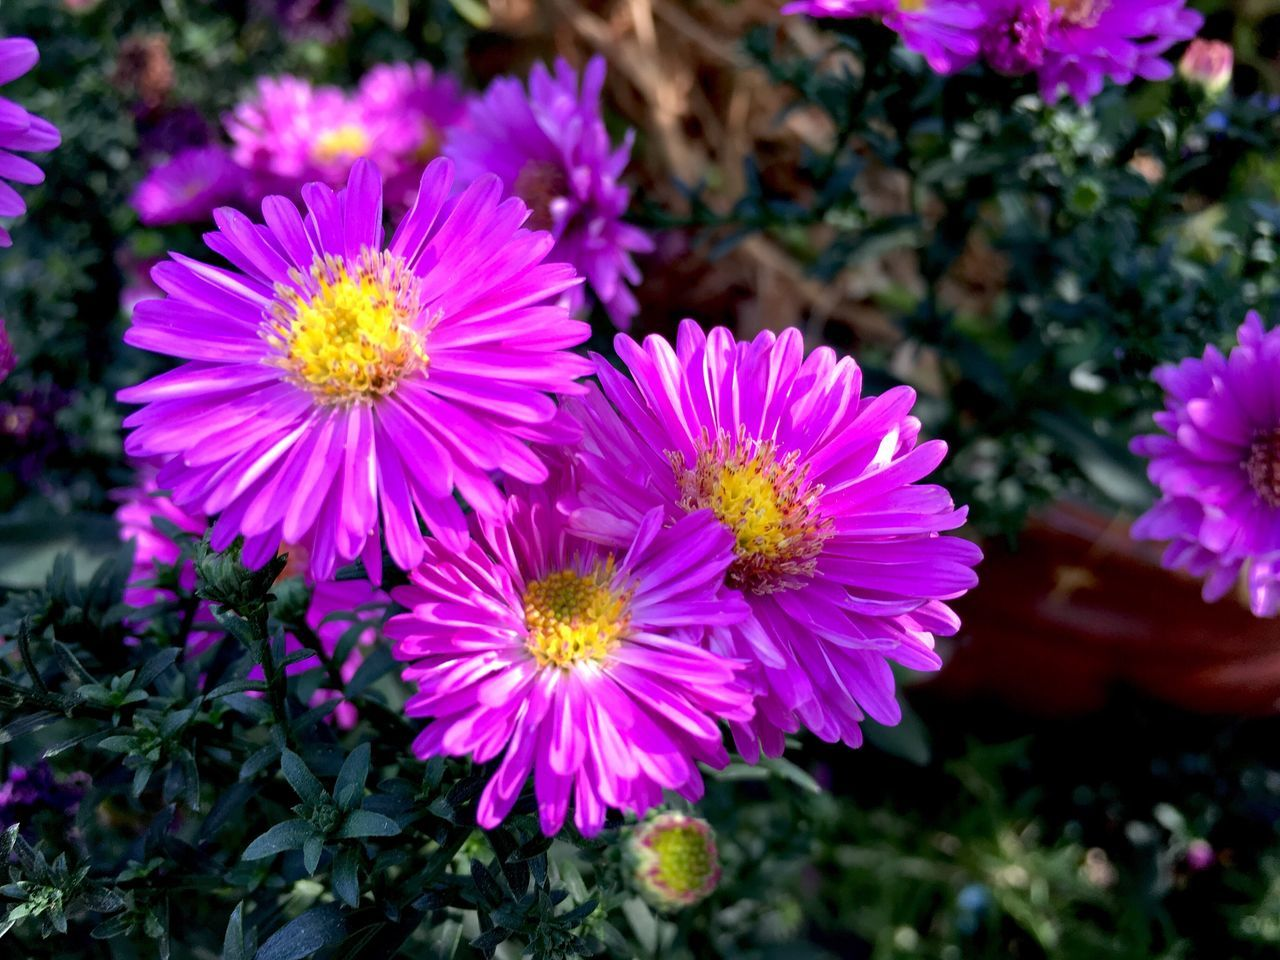 flower, petal, fragility, beauty in nature, freshness, nature, growth, flower head, plant, outdoors, day, blooming, pink color, close-up, no people